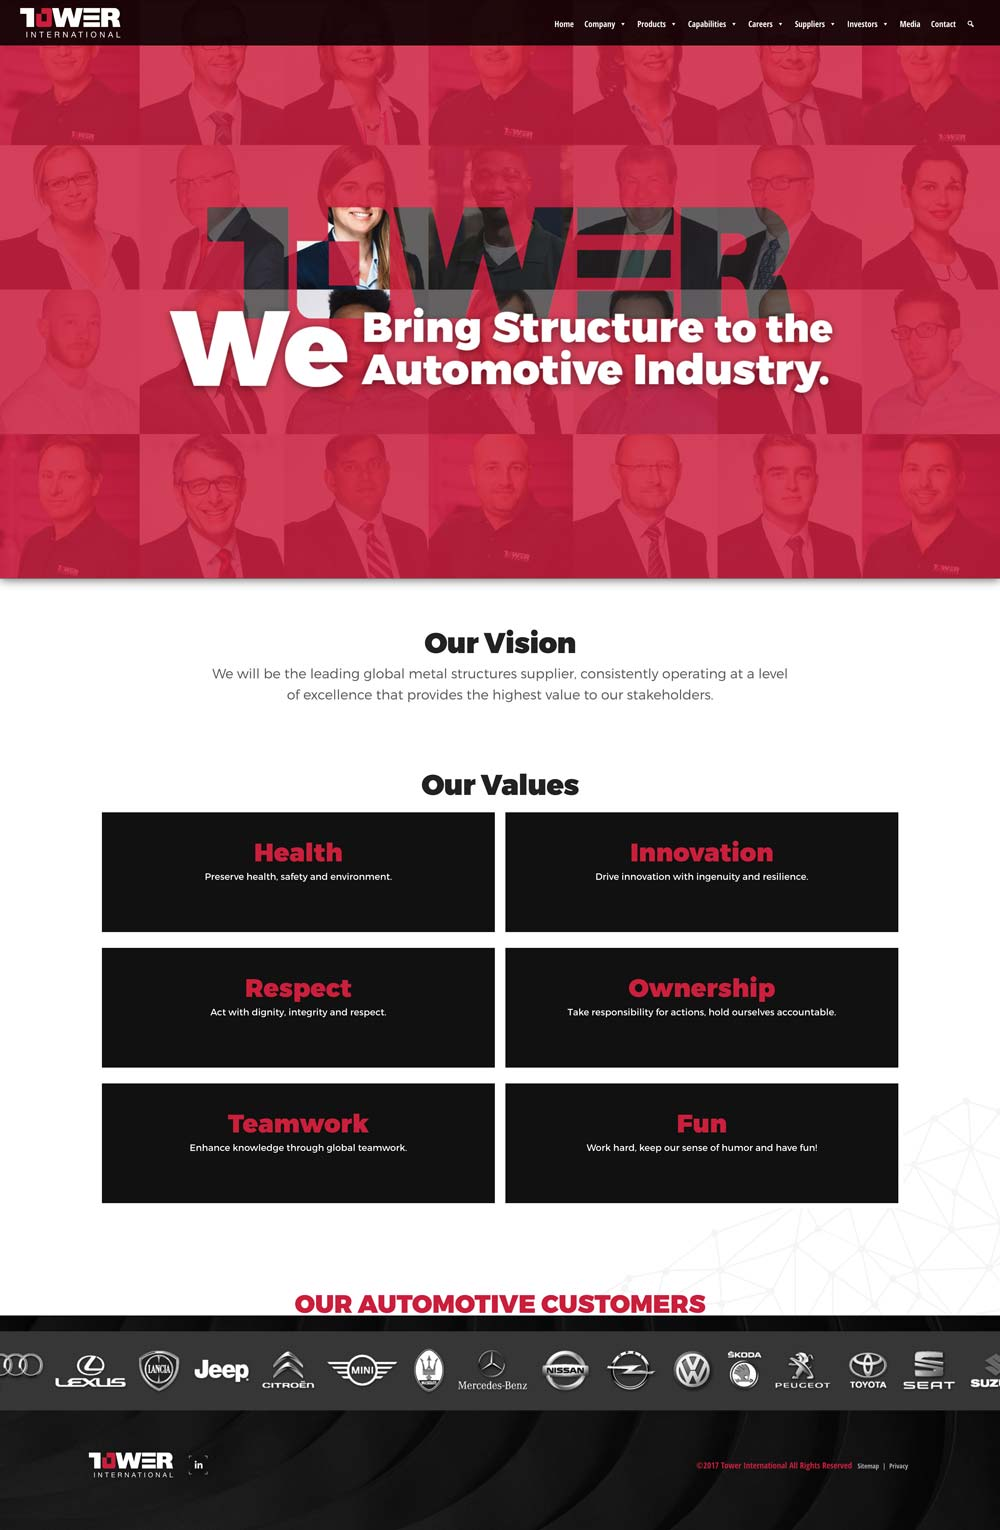 tower international website values page